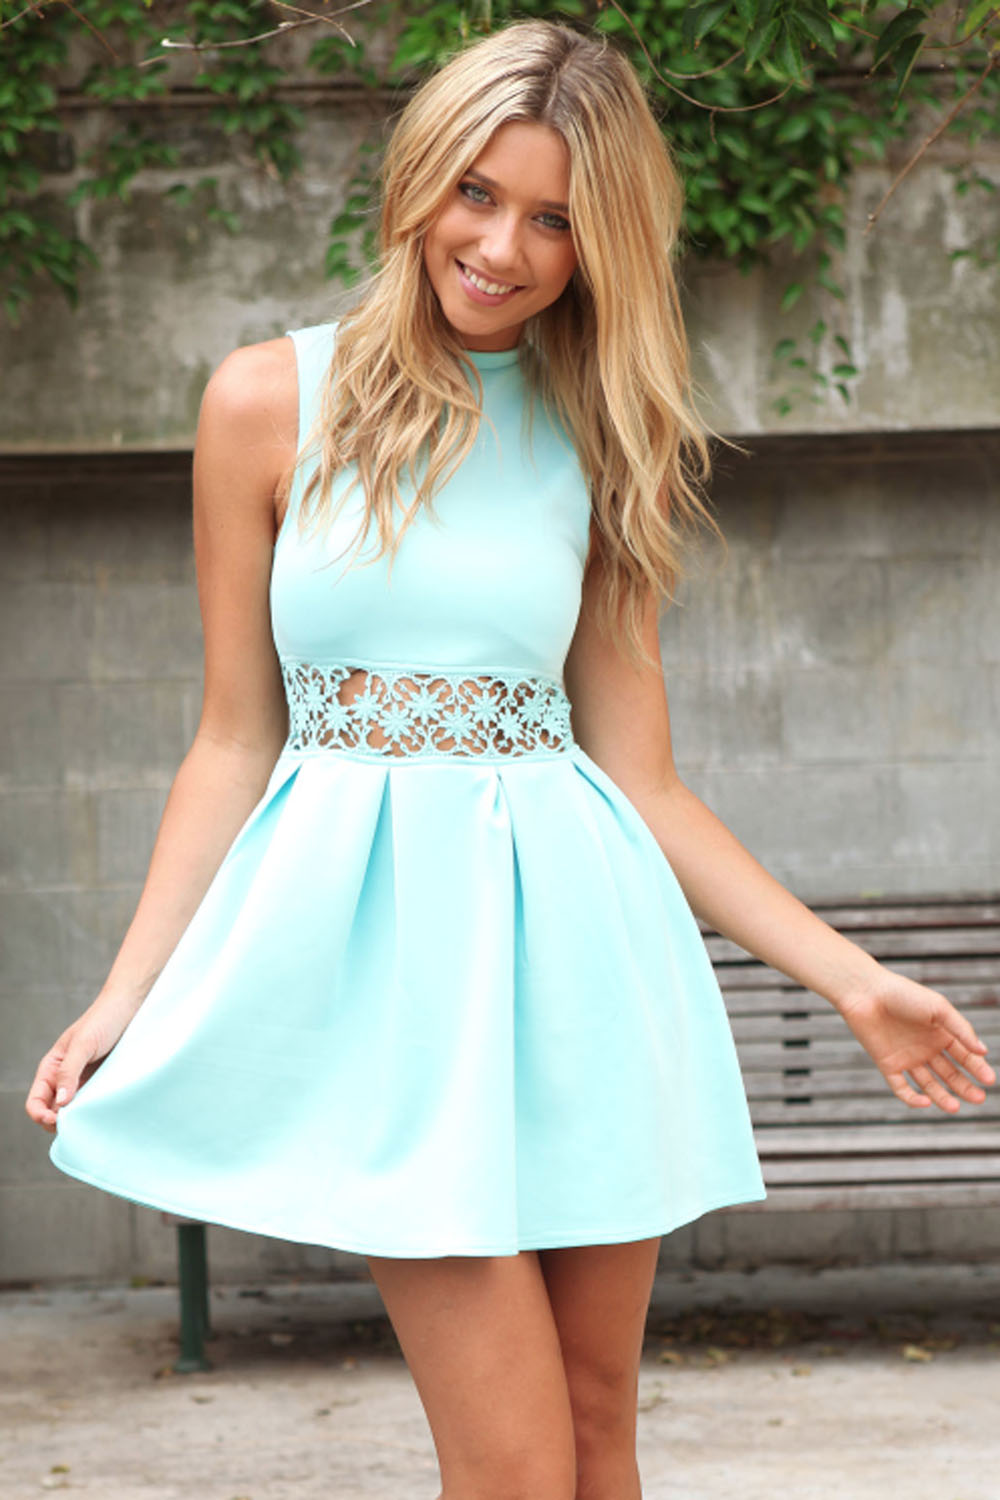 Party Dress - Mint Turtle-Neck Dress with Cut-out   UsTrendy